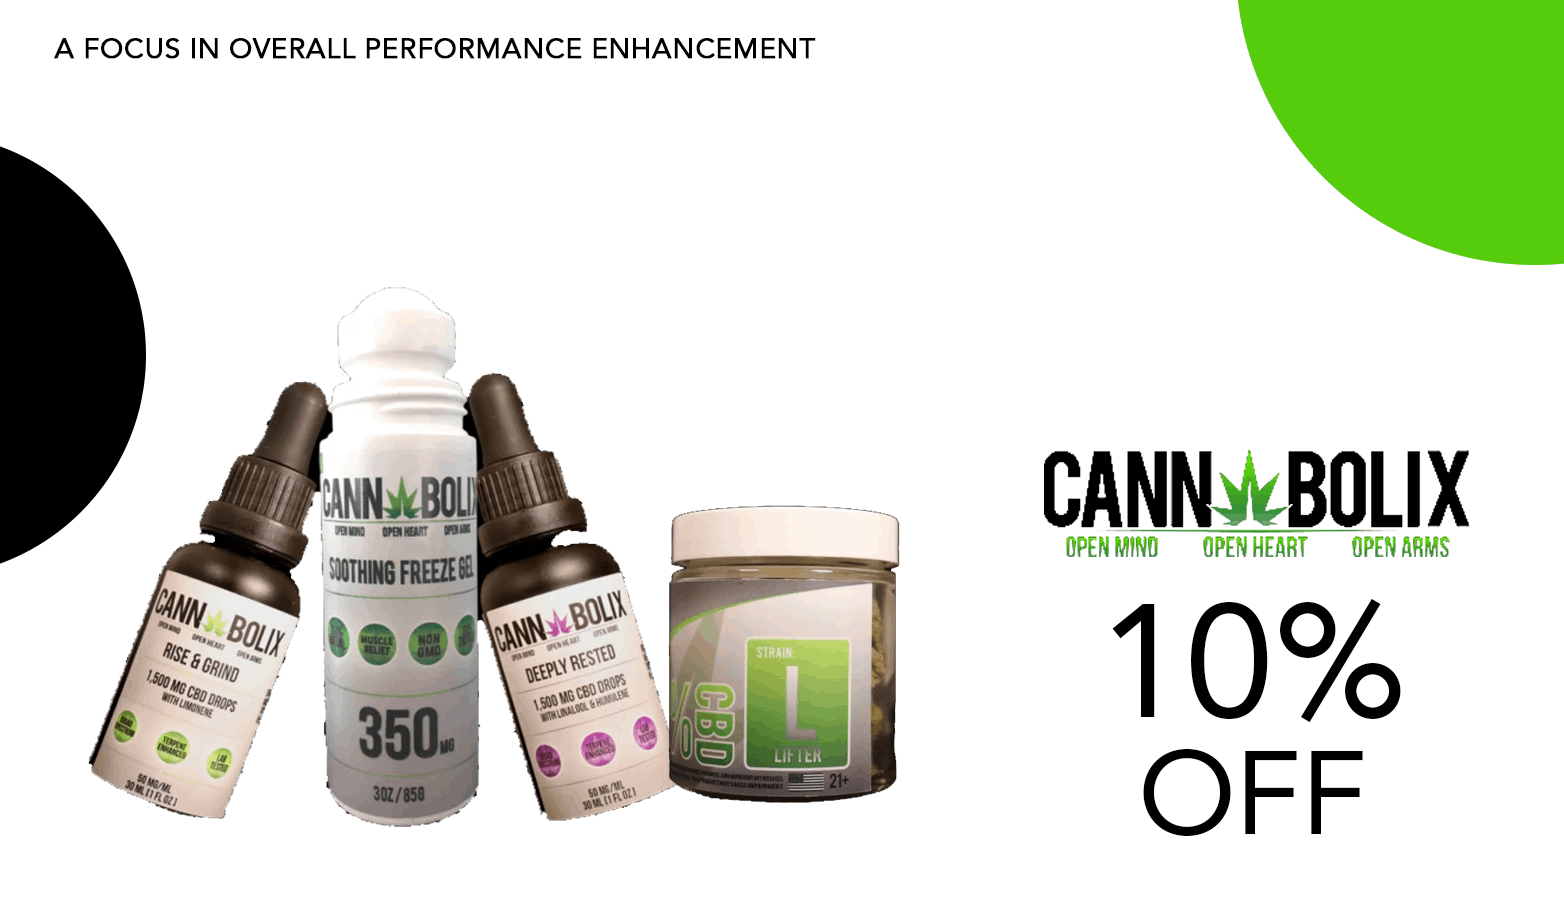 Cannabolix CBD Coupon Code Offer Website